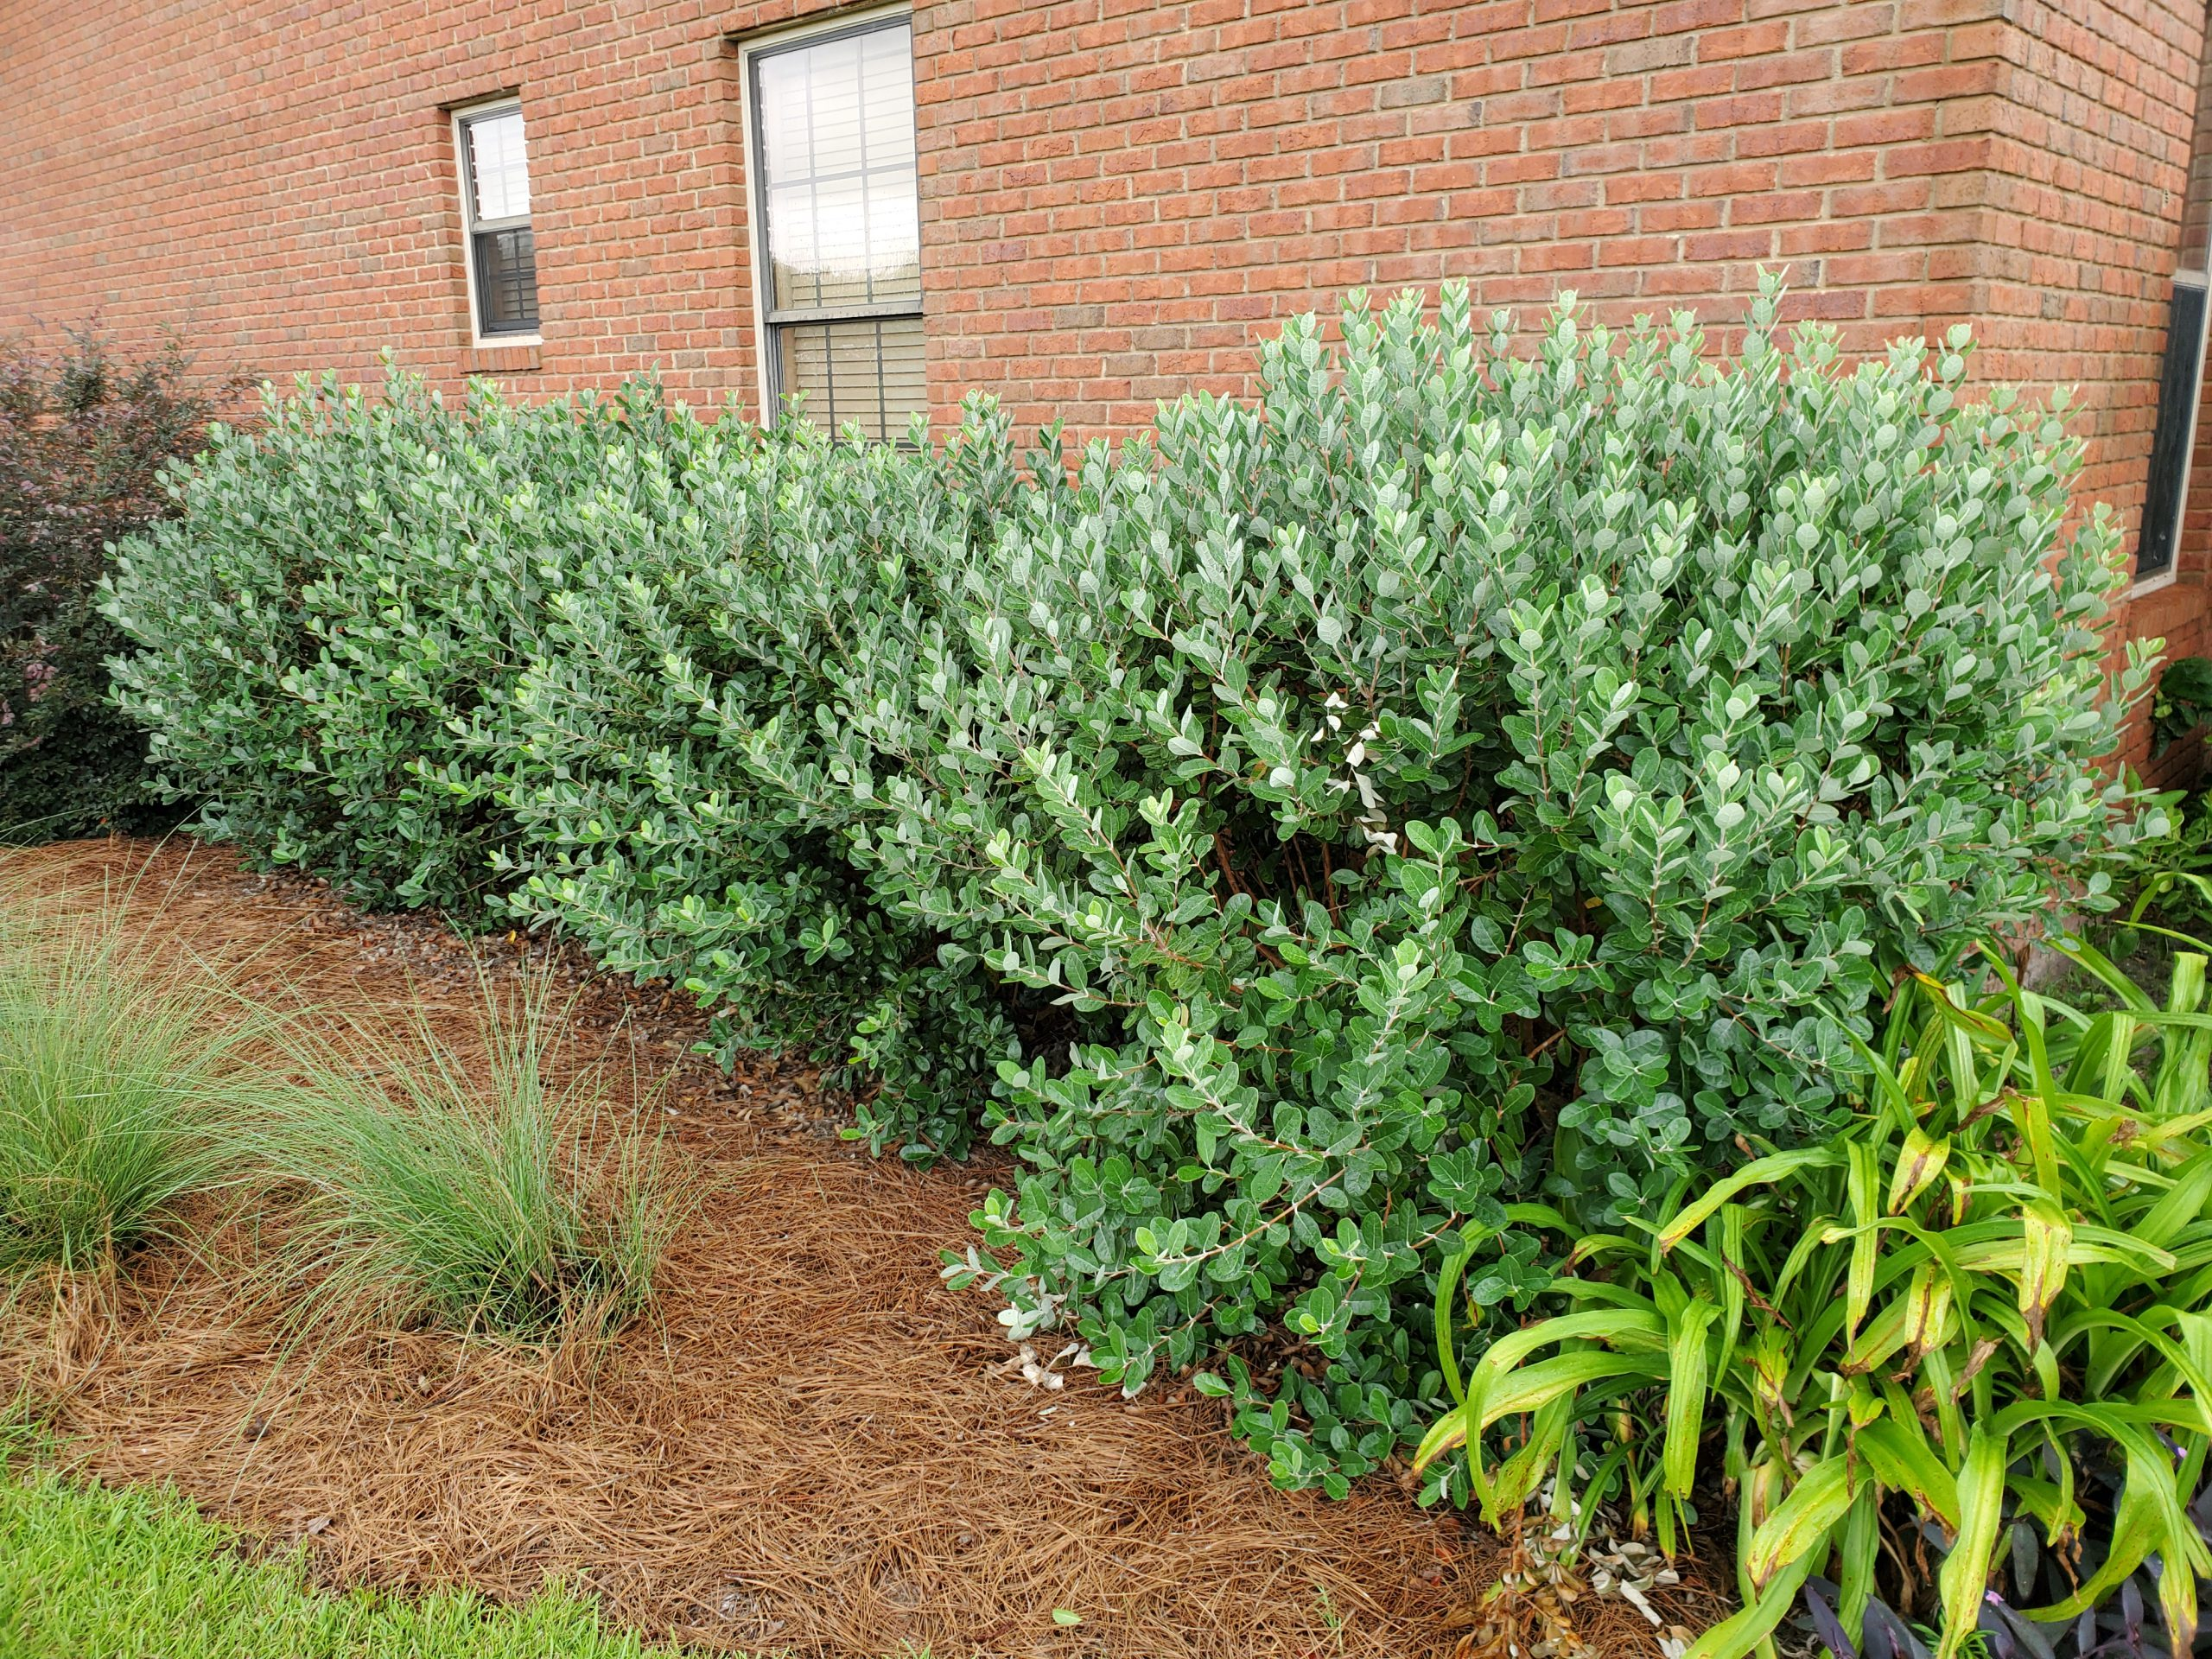 Pineapple Guava An Outstanding Florida Friendly Shrub Gardening In The Panhandle